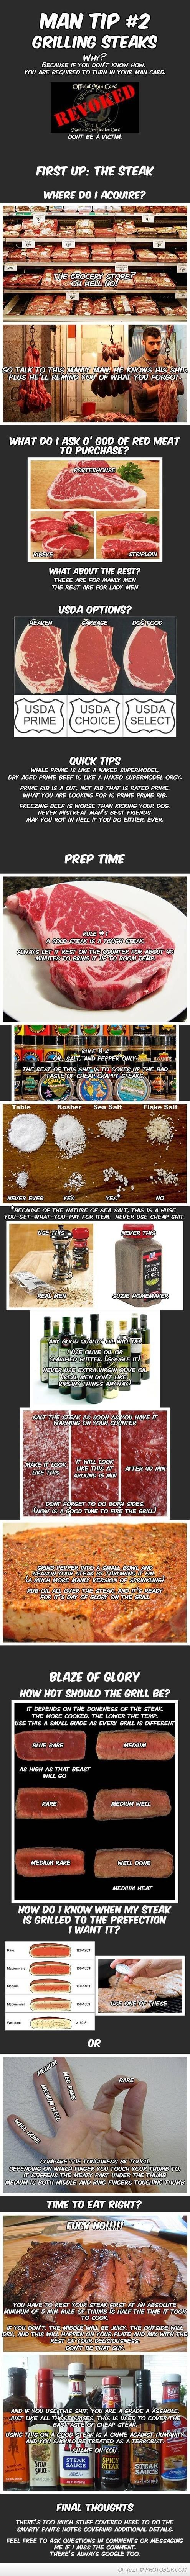 HAHA! Don't disagree with a thing, except the olive oil.